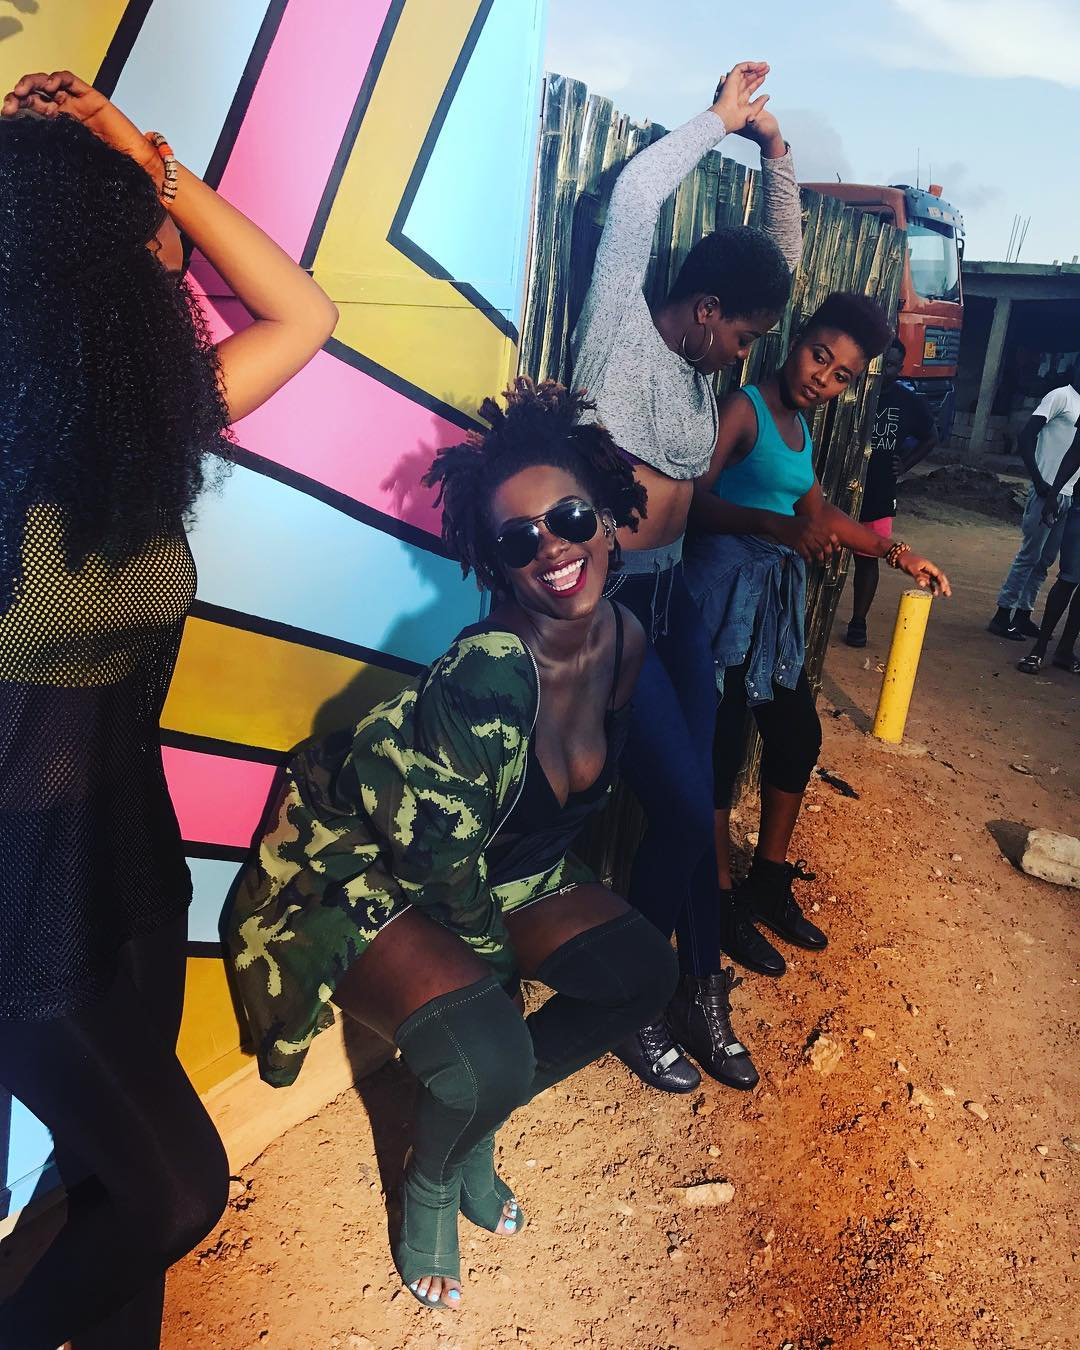 Photo: This Infectious Smile Of Ebony Reigns Is All You Need This Sunny Day